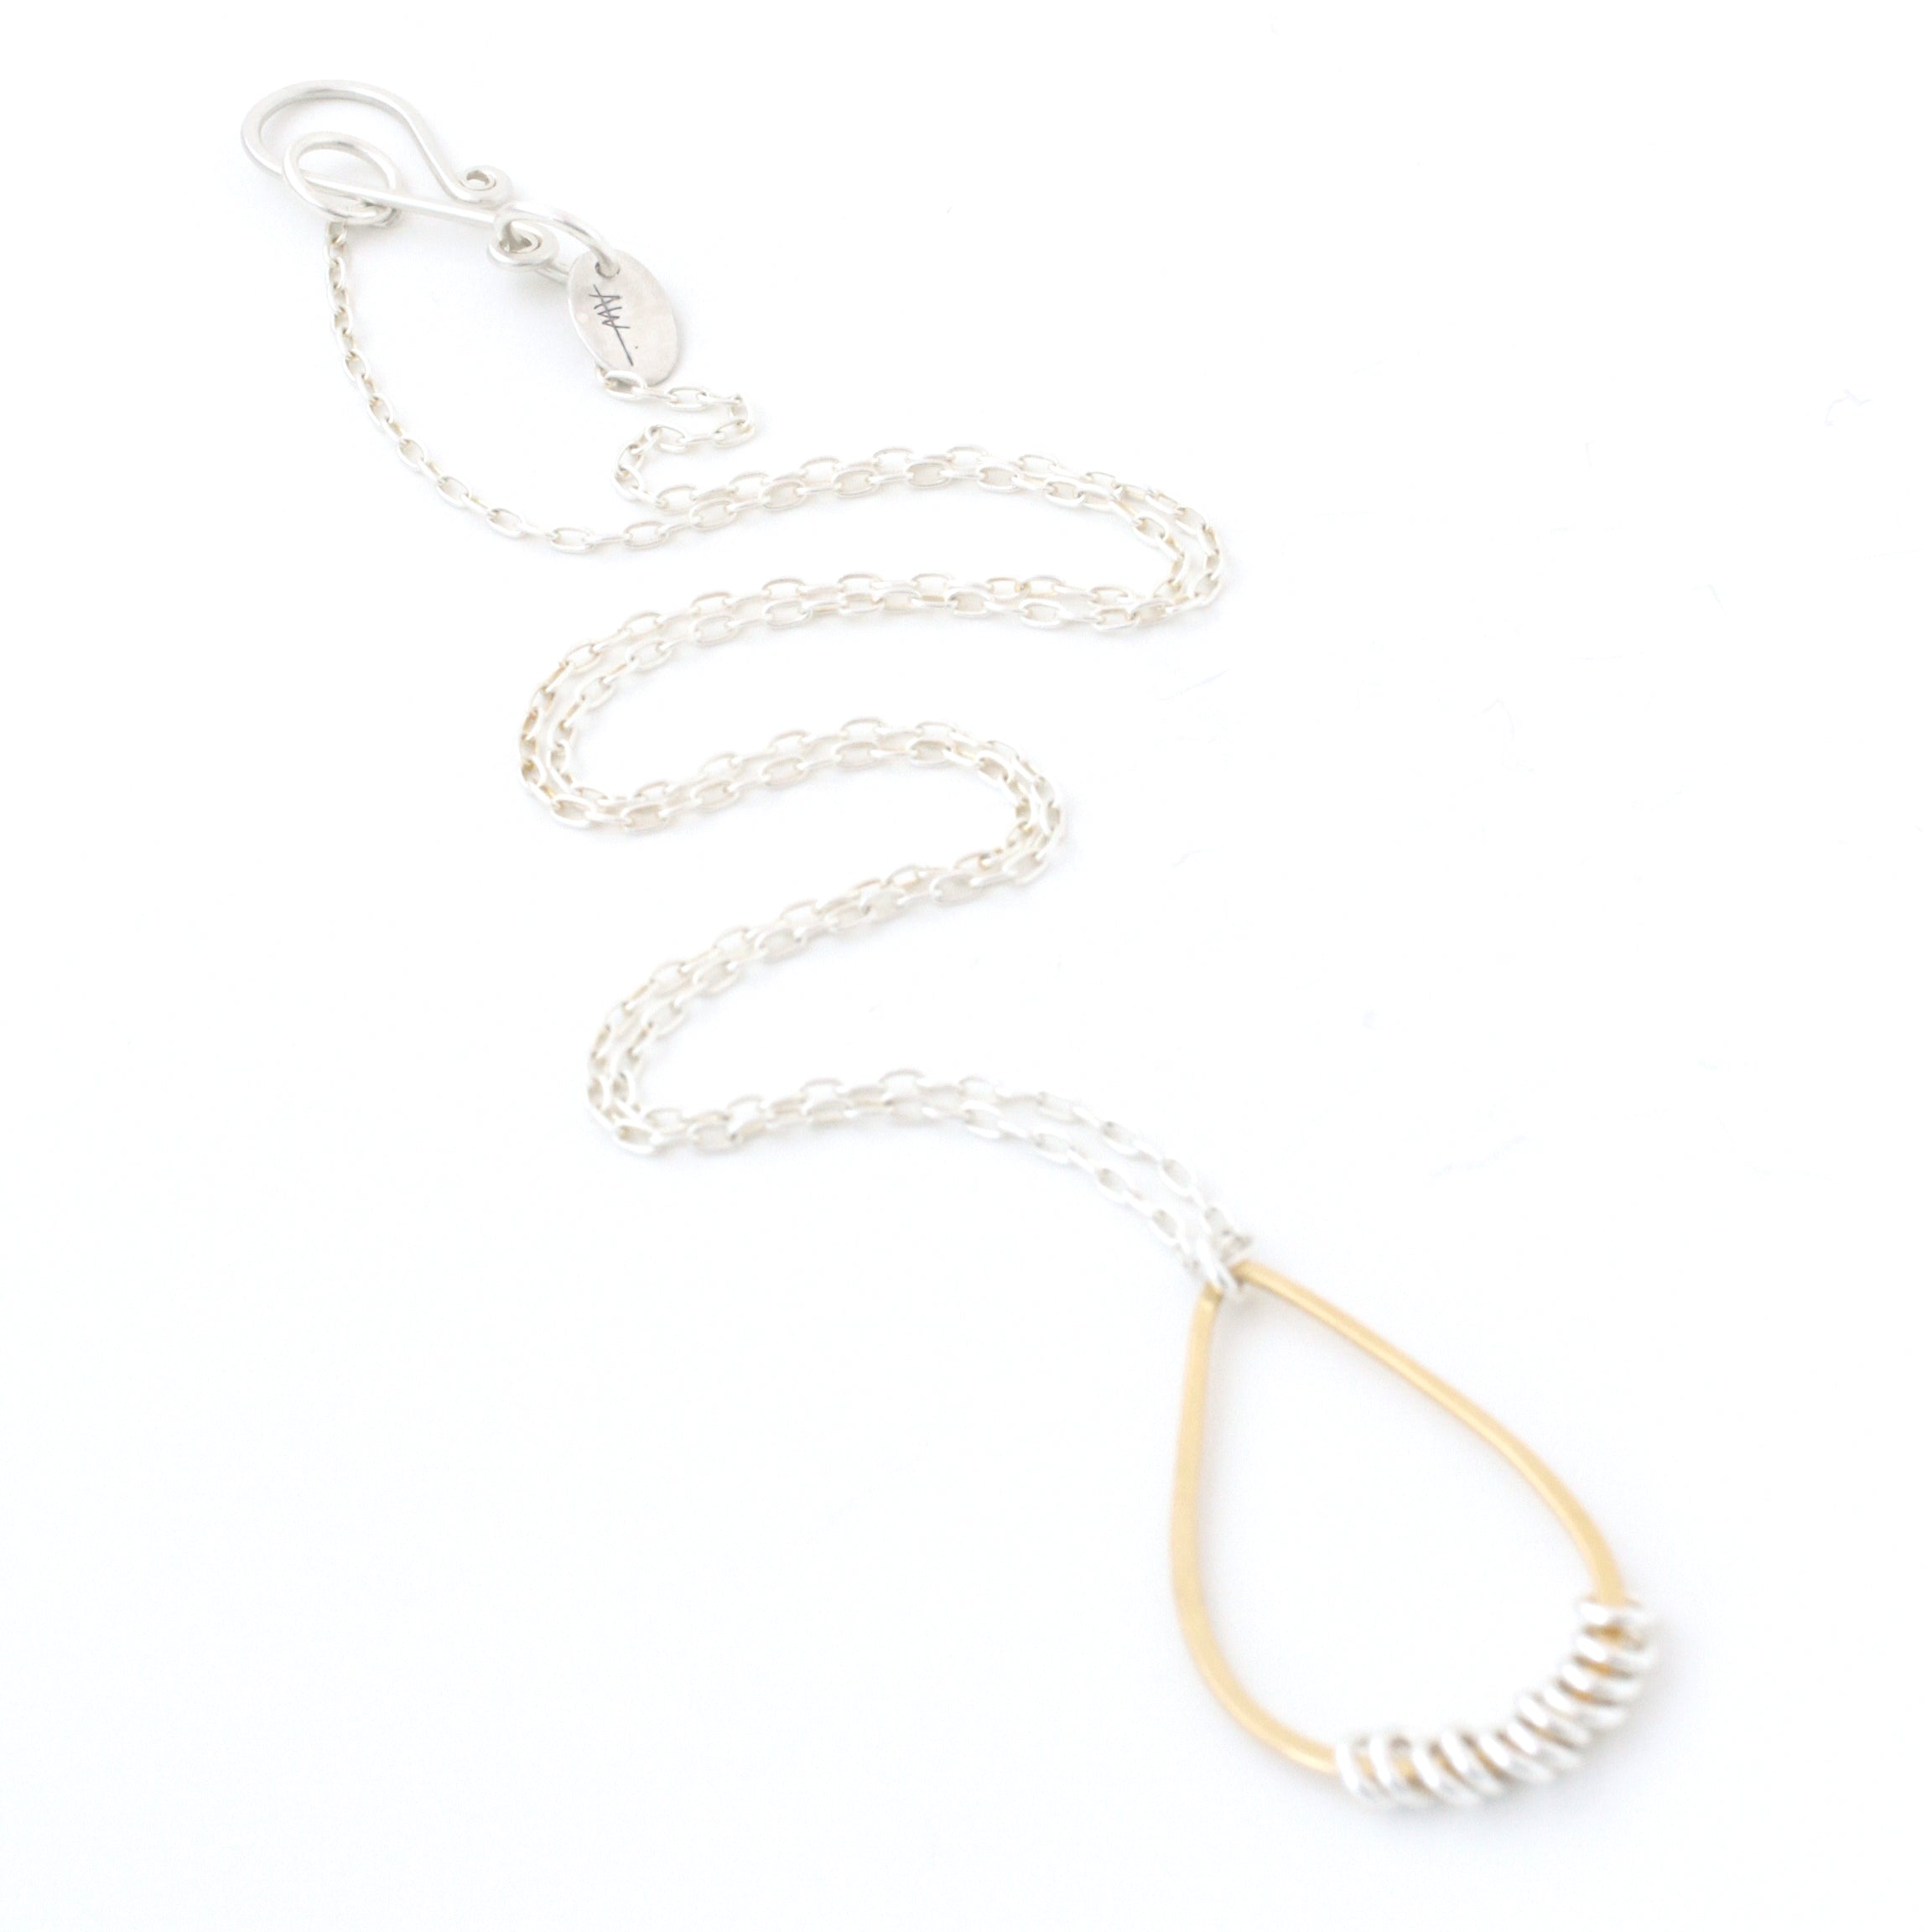 Suspended Necklace (Gold-Filled)